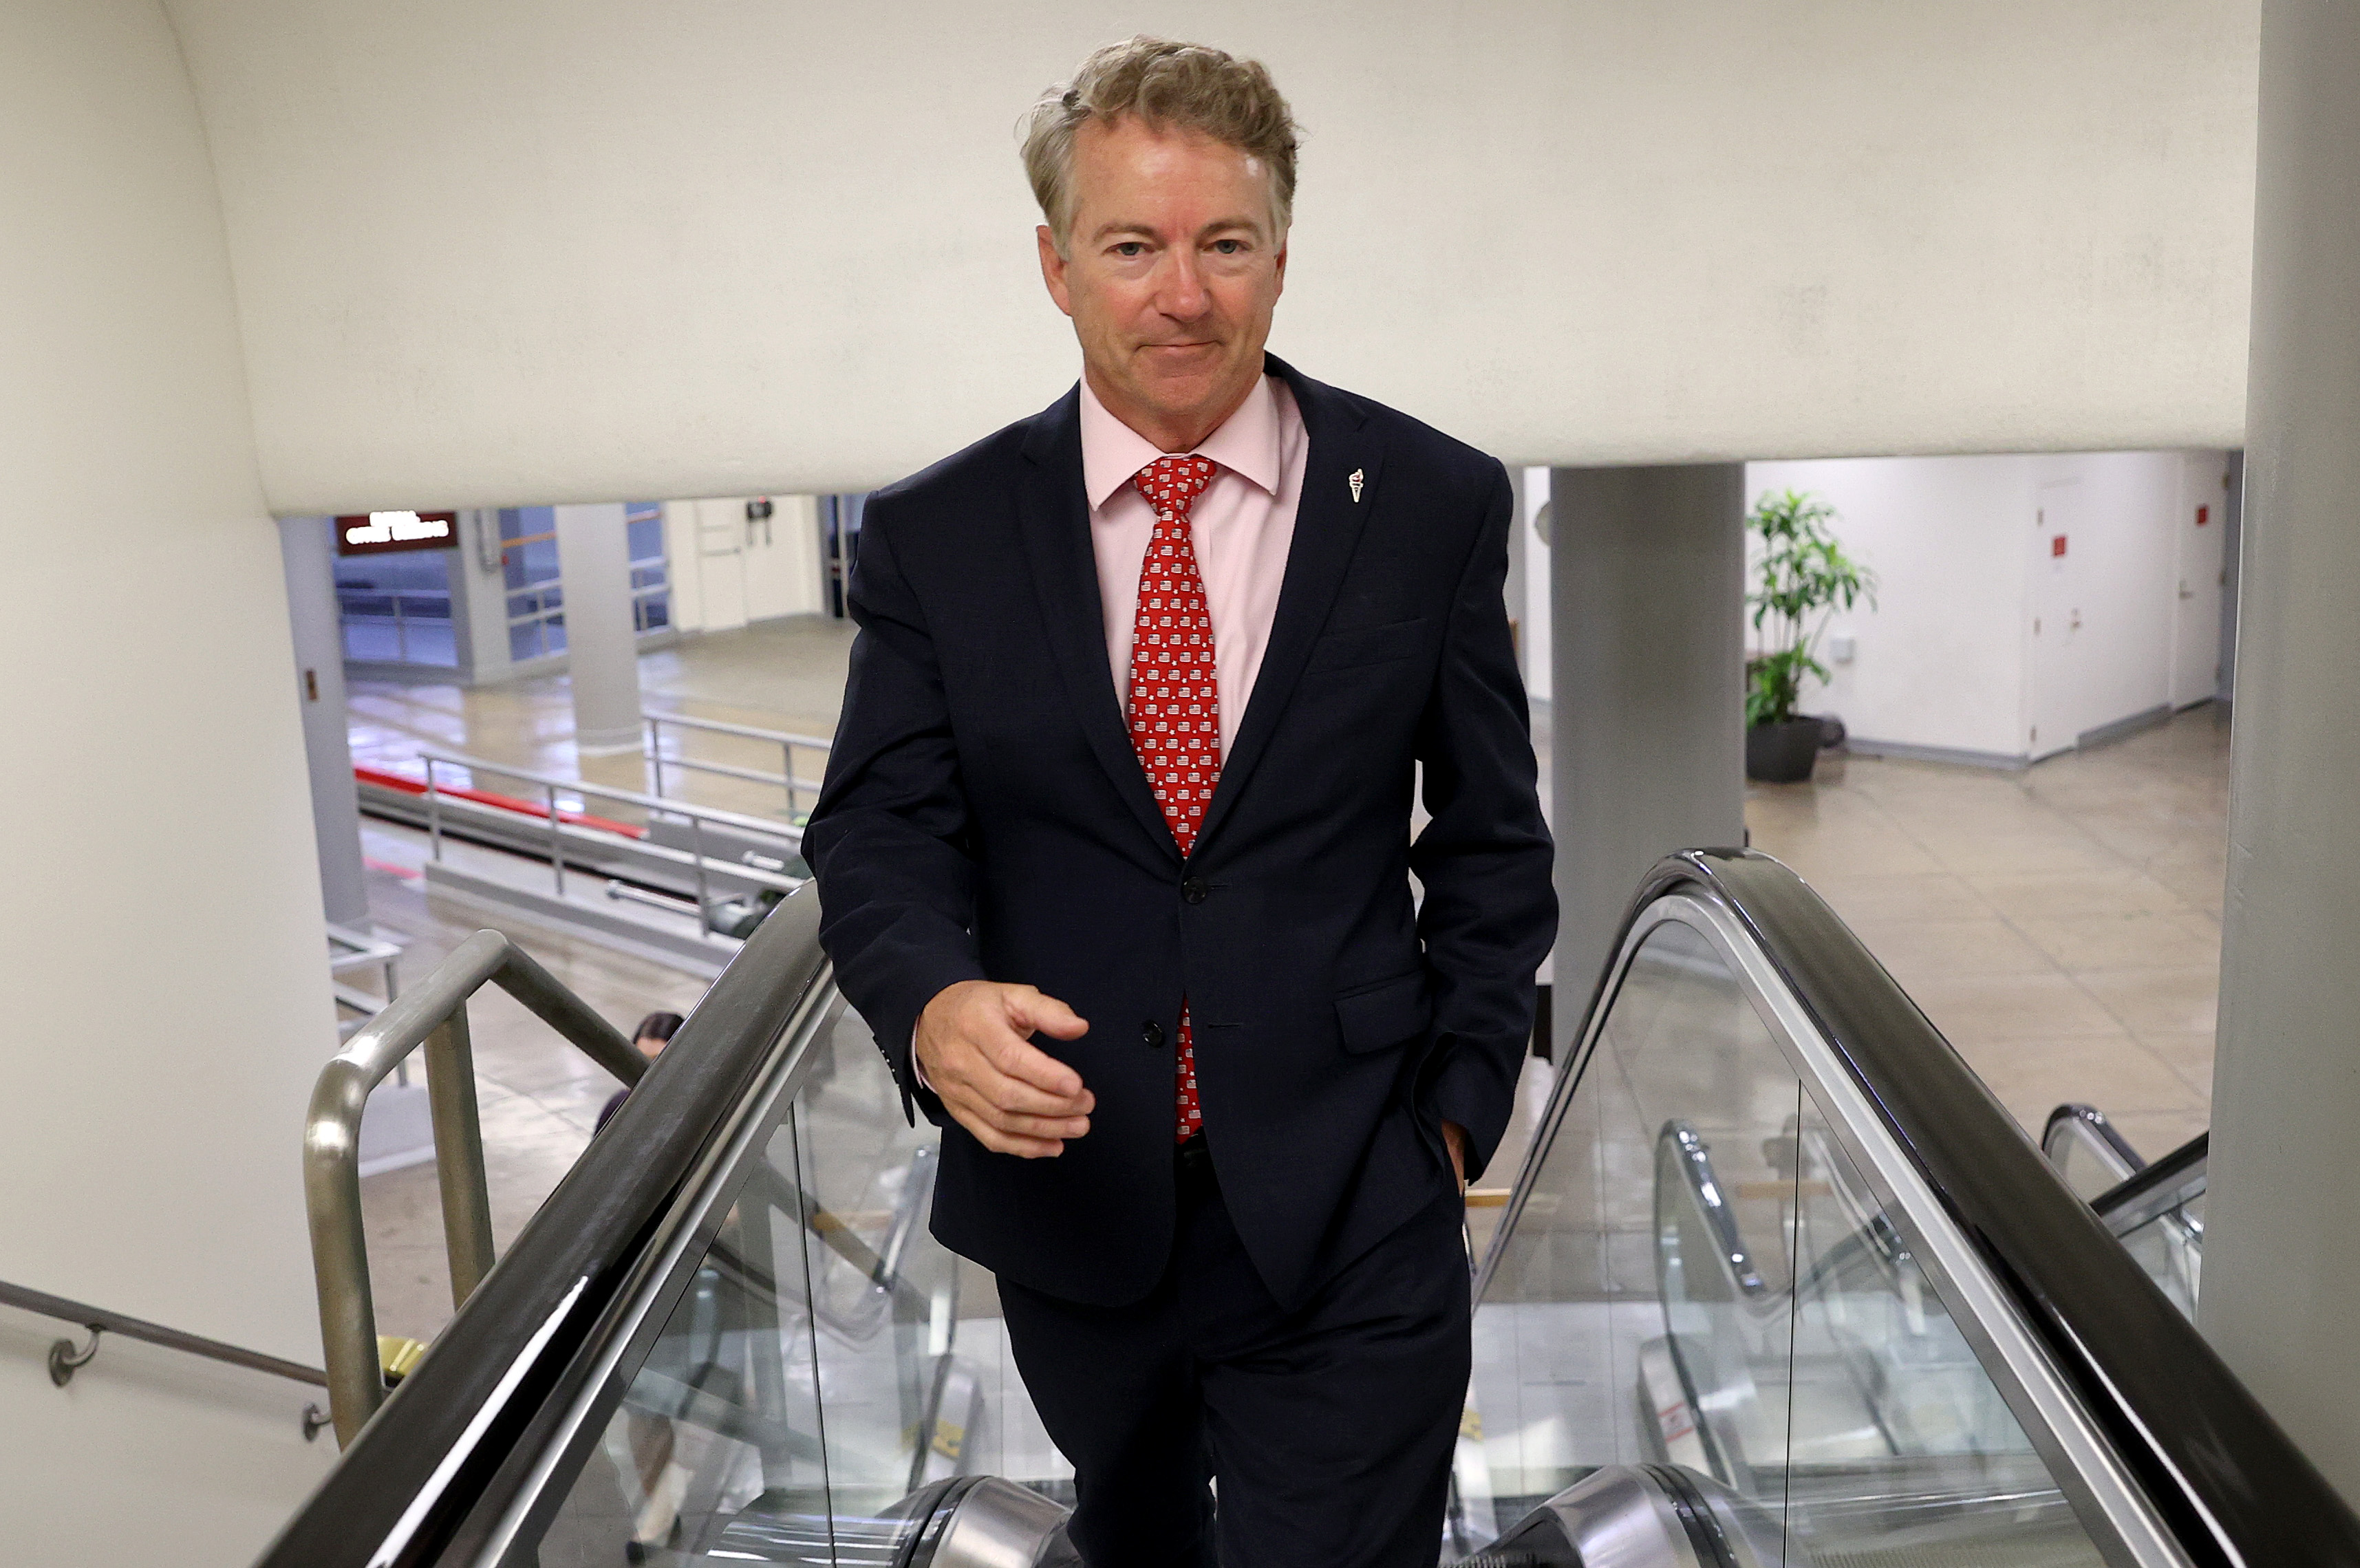 you tested positive for covid-19. who has a right to know? You Tested Positive for COVID-19. Who Has a Right to Know? Rand Paul 1